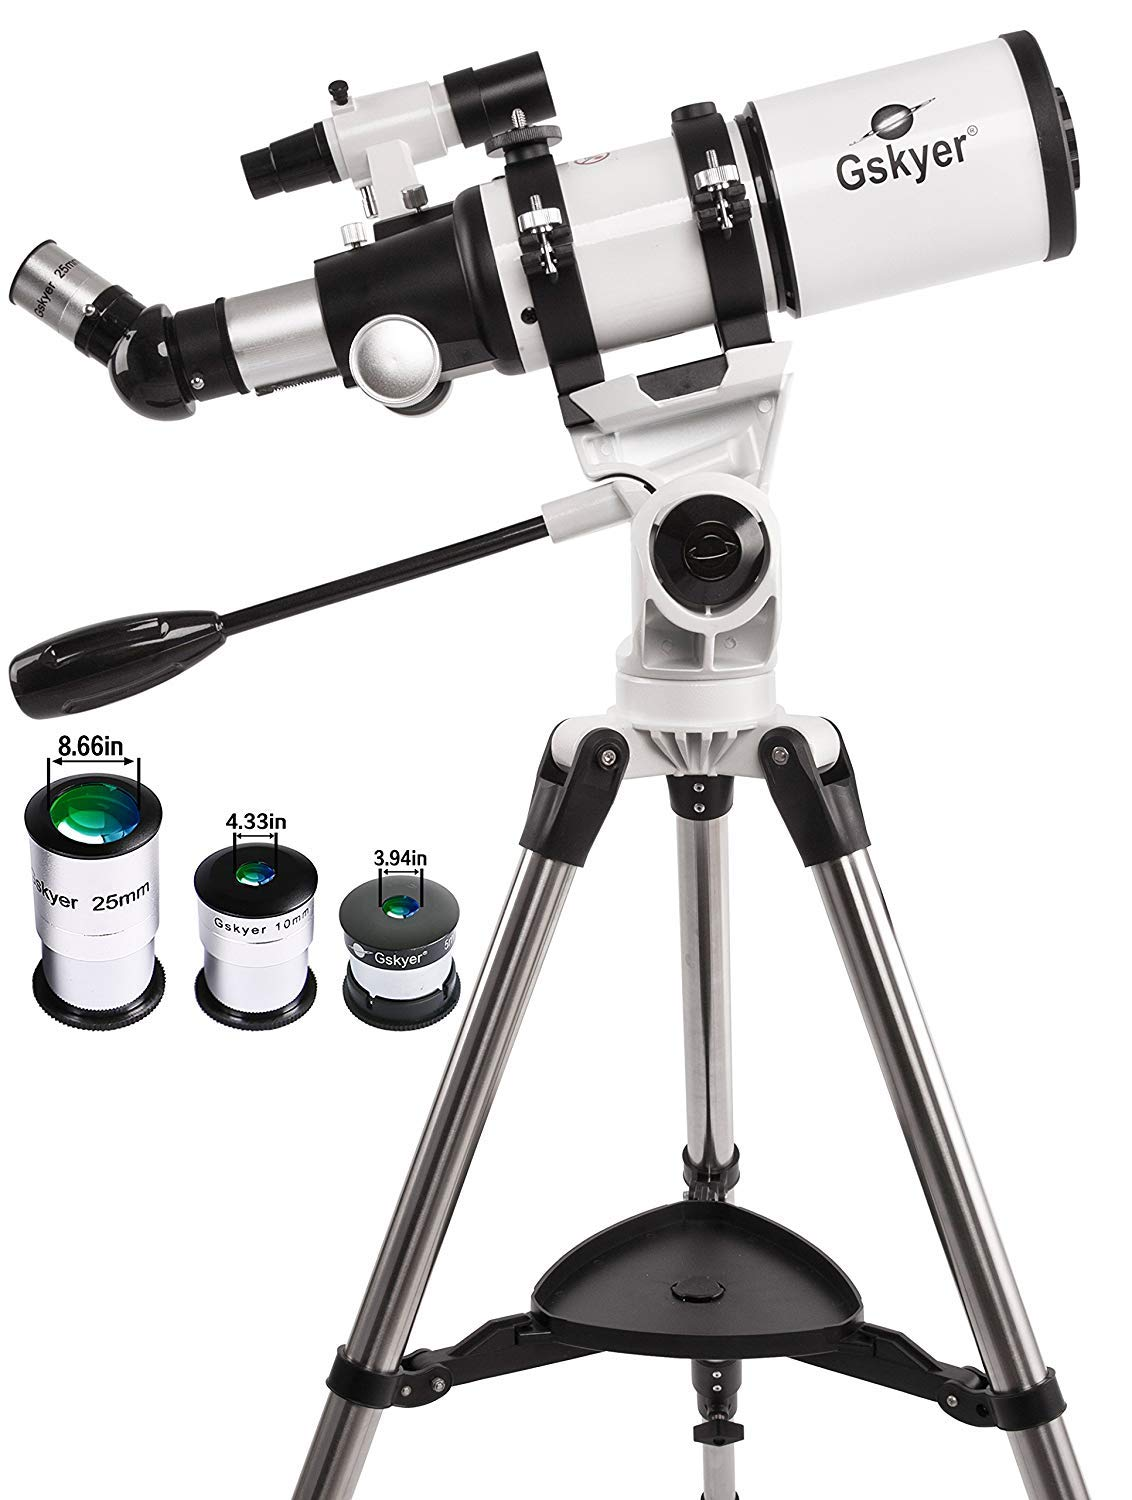 Gskyer Telescope, 80mm Aperture 400mm AZ, Astronomy Refractor Telescope with Smartphone Adapter and Bluetooth Camera Remote